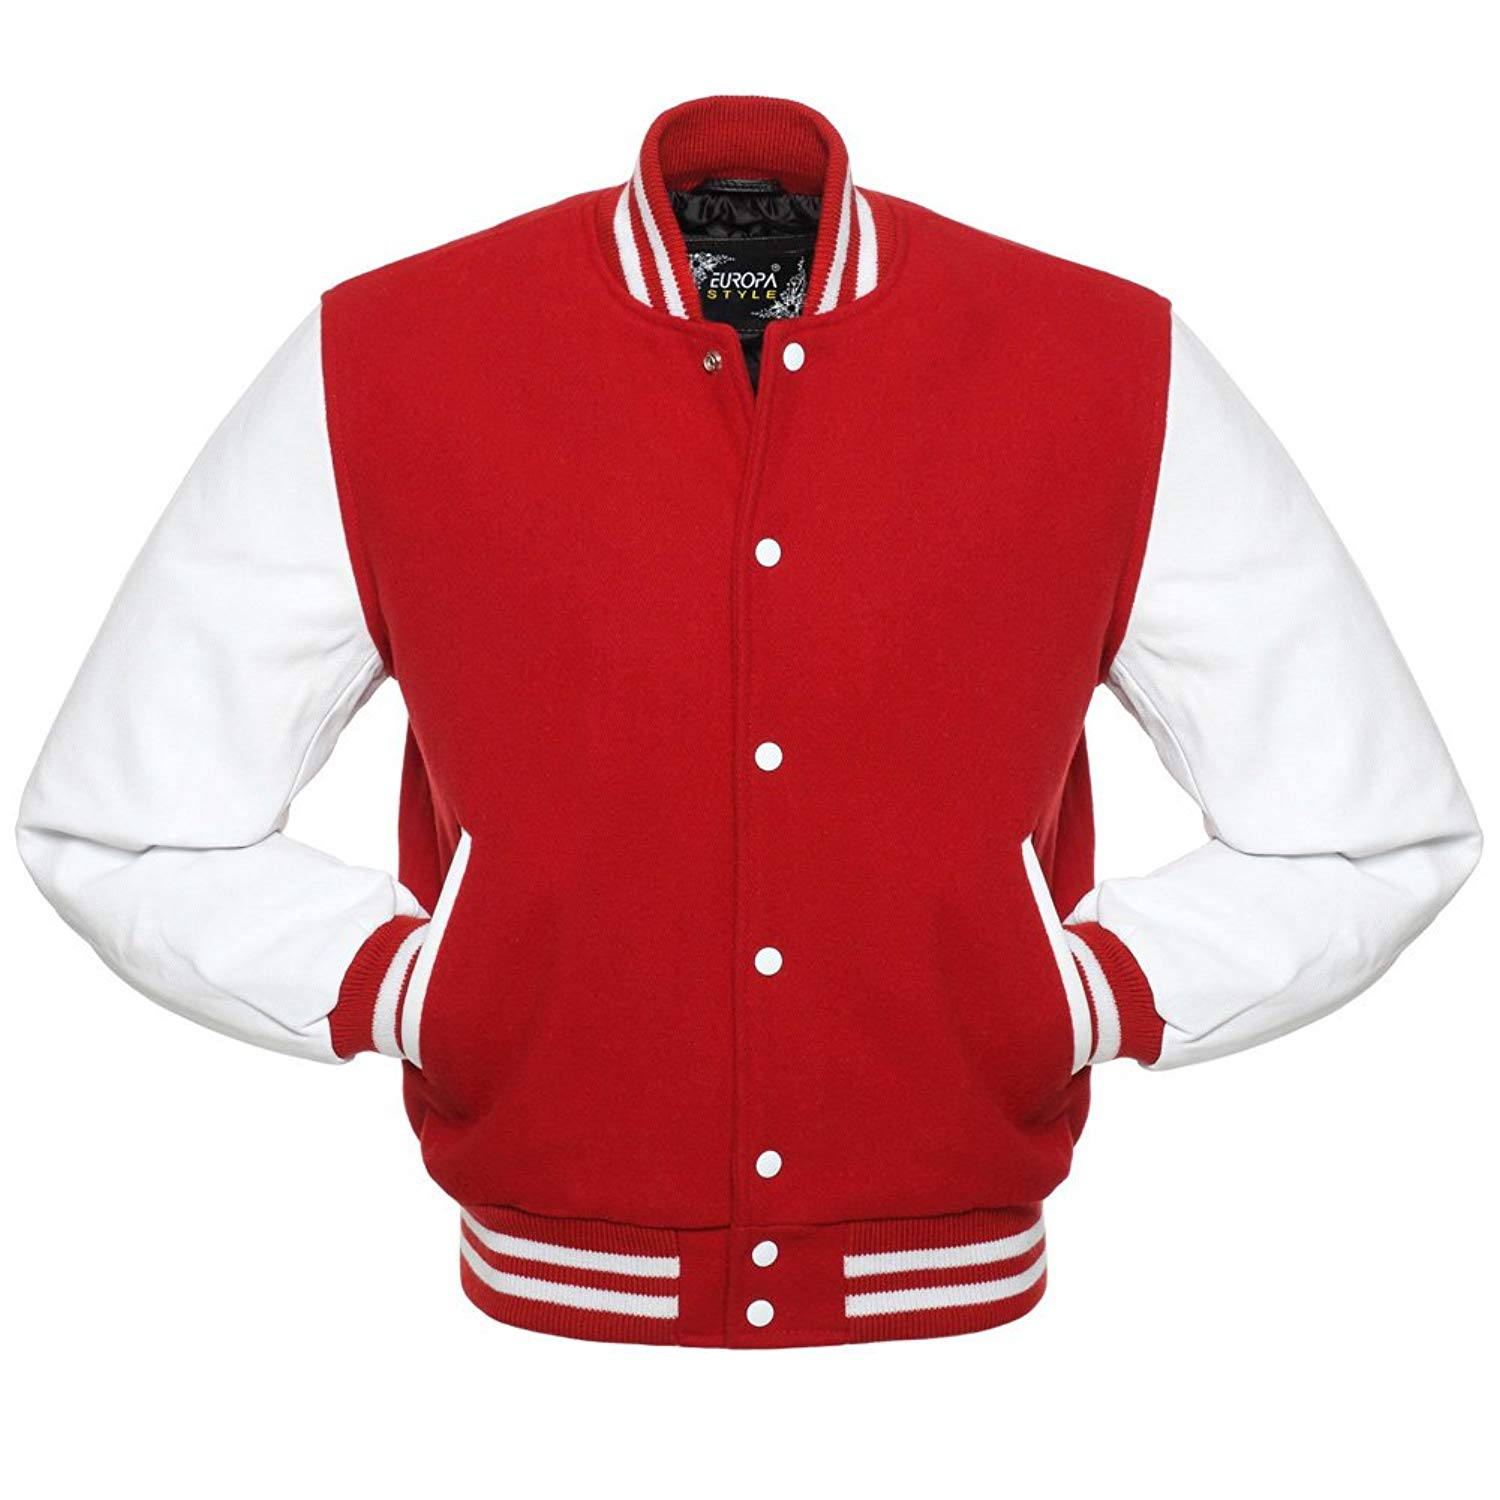 Varsity Jacket for Men's Stylish & Fashionable Baseball Jacket 100% Wool & 100% Genuion Leather